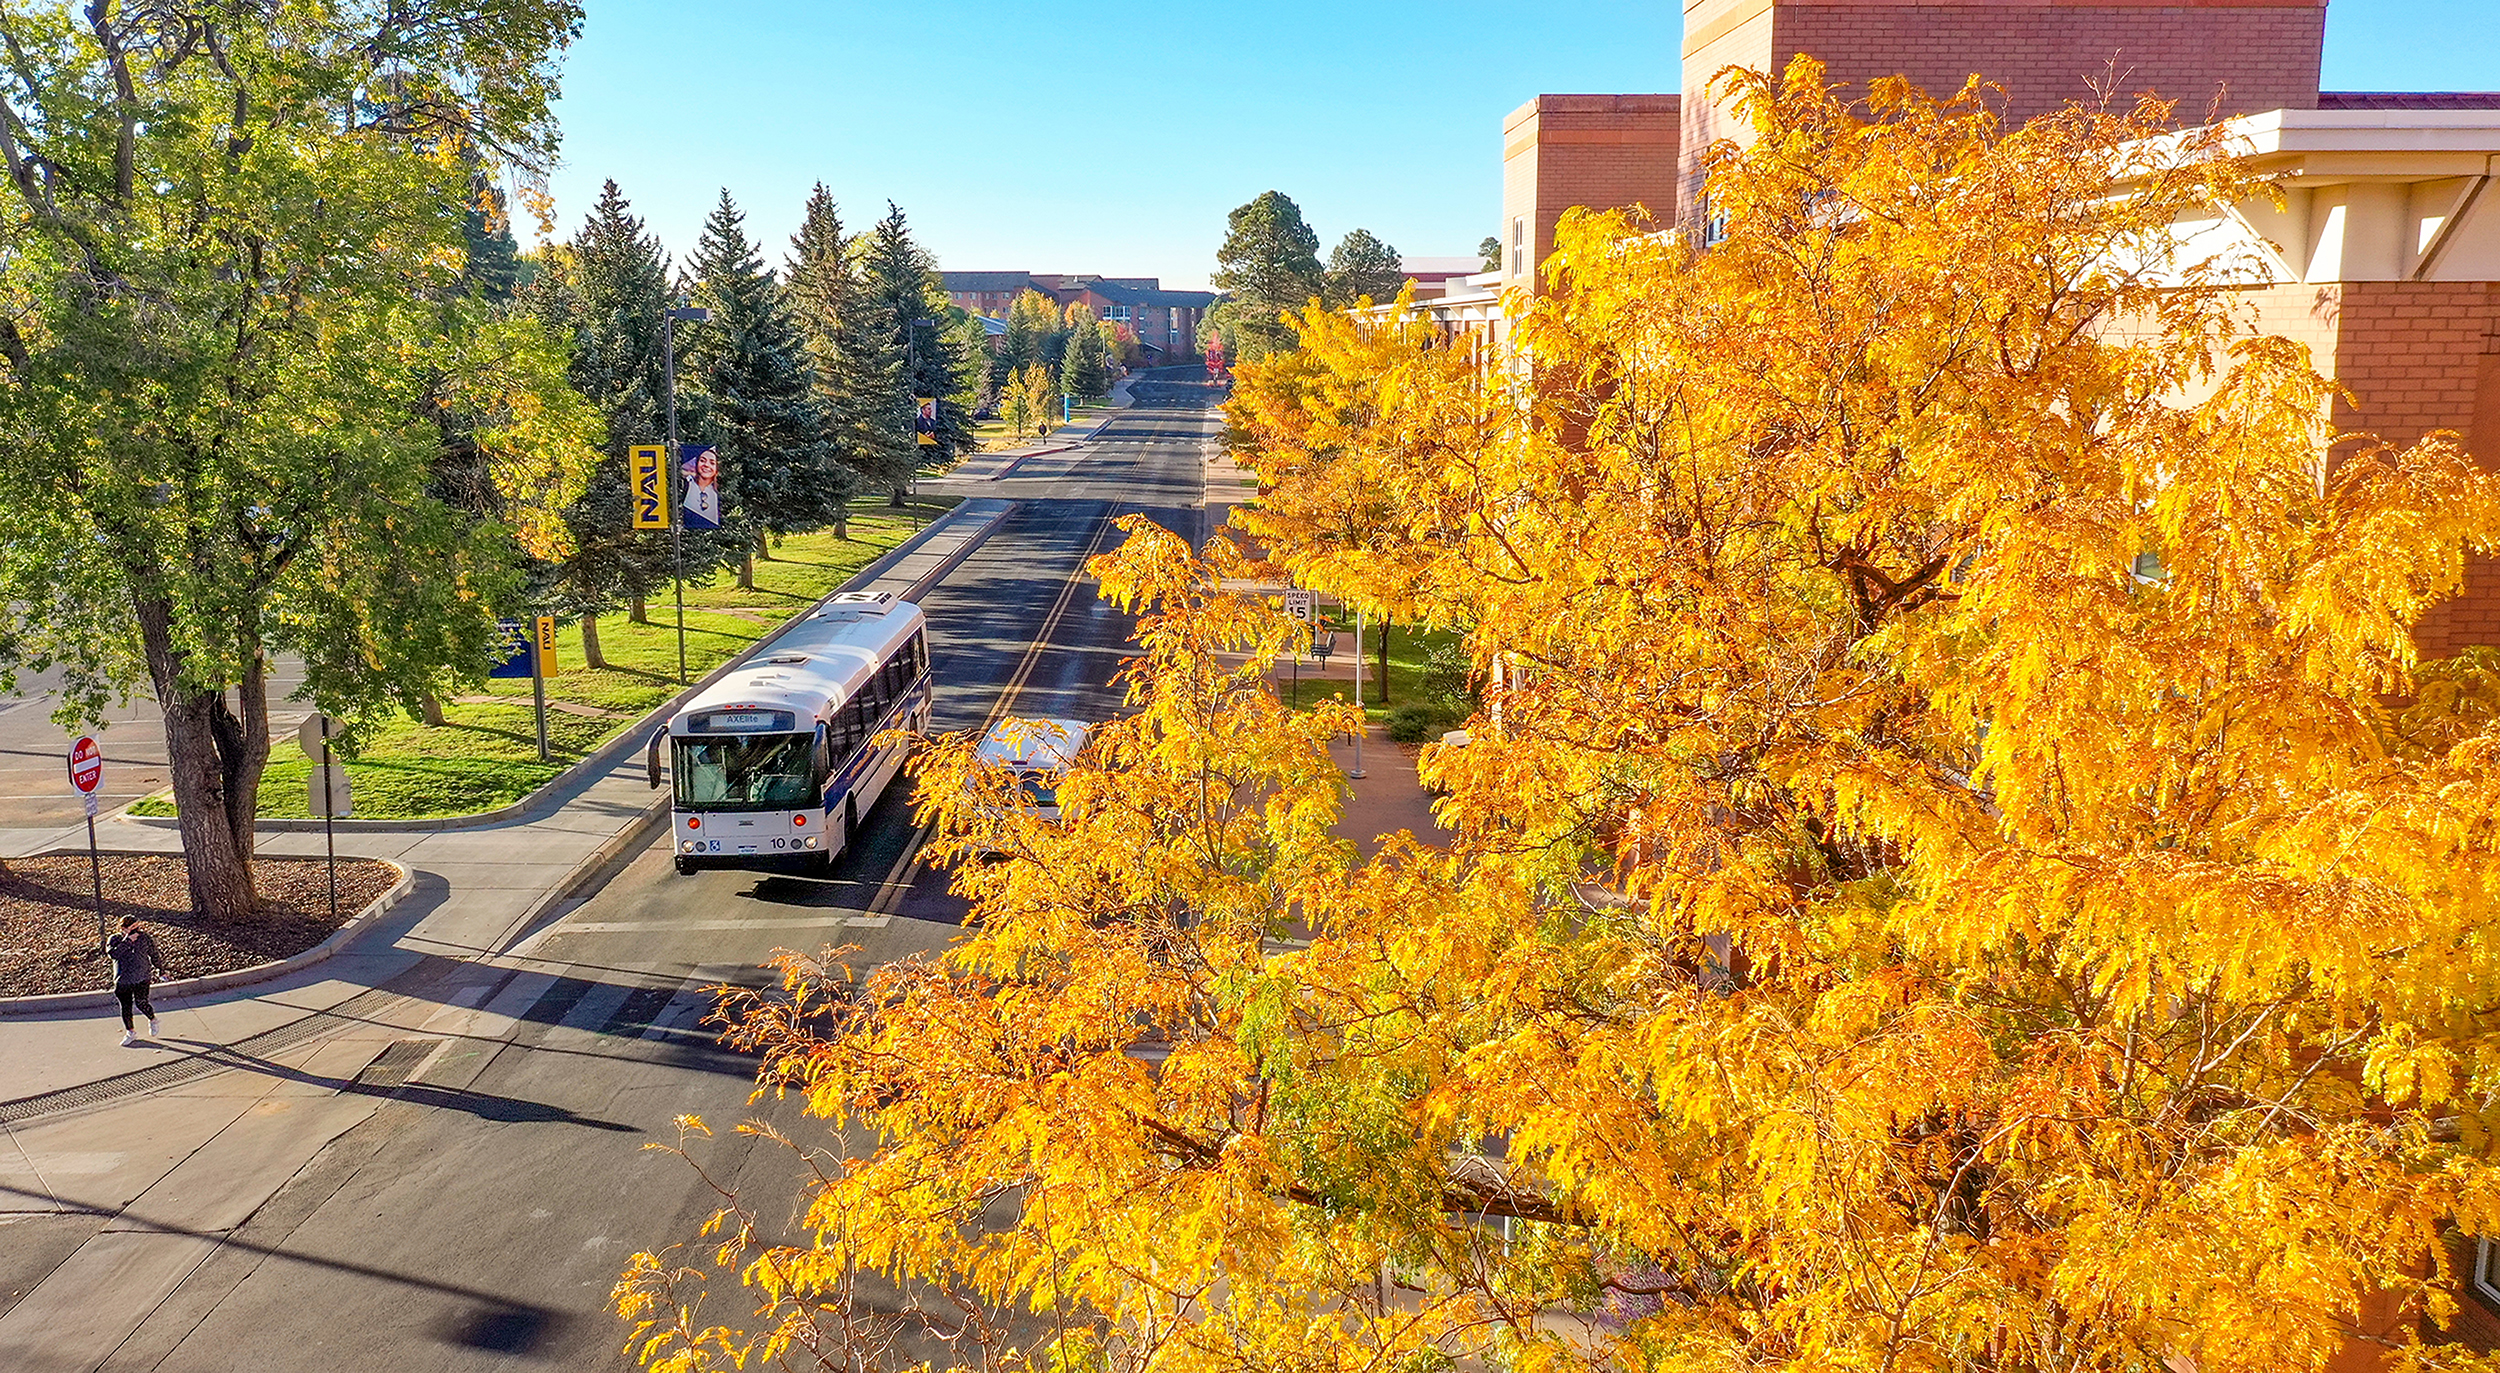 Aerial photo of the NAU campus with tree in fall colors in the foreground.